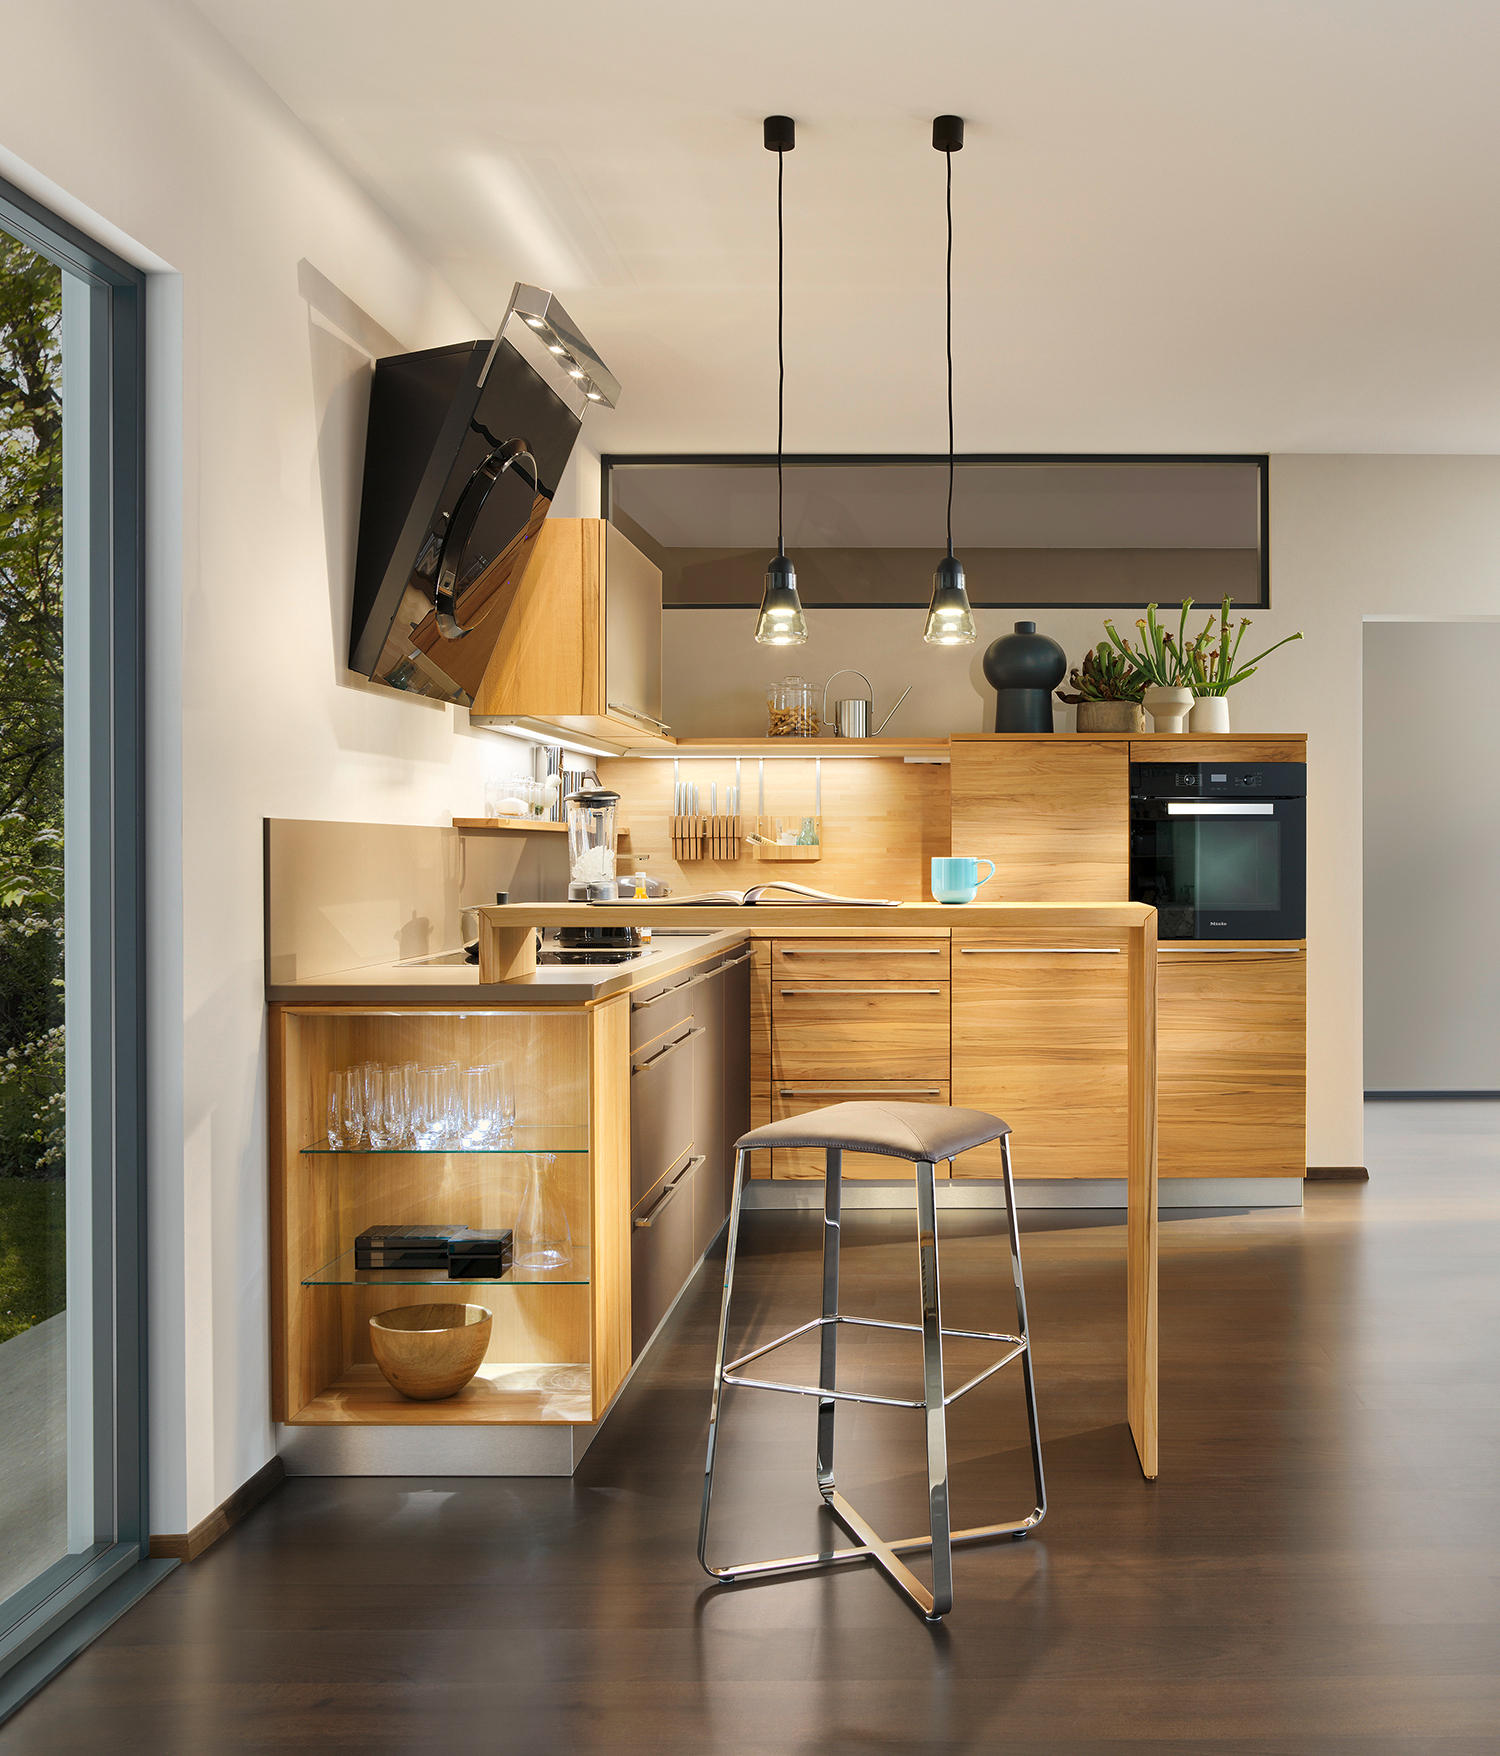 Küche team 7  L1 KITCHEN - Fitted kitchens from TEAM 7 | Architonic